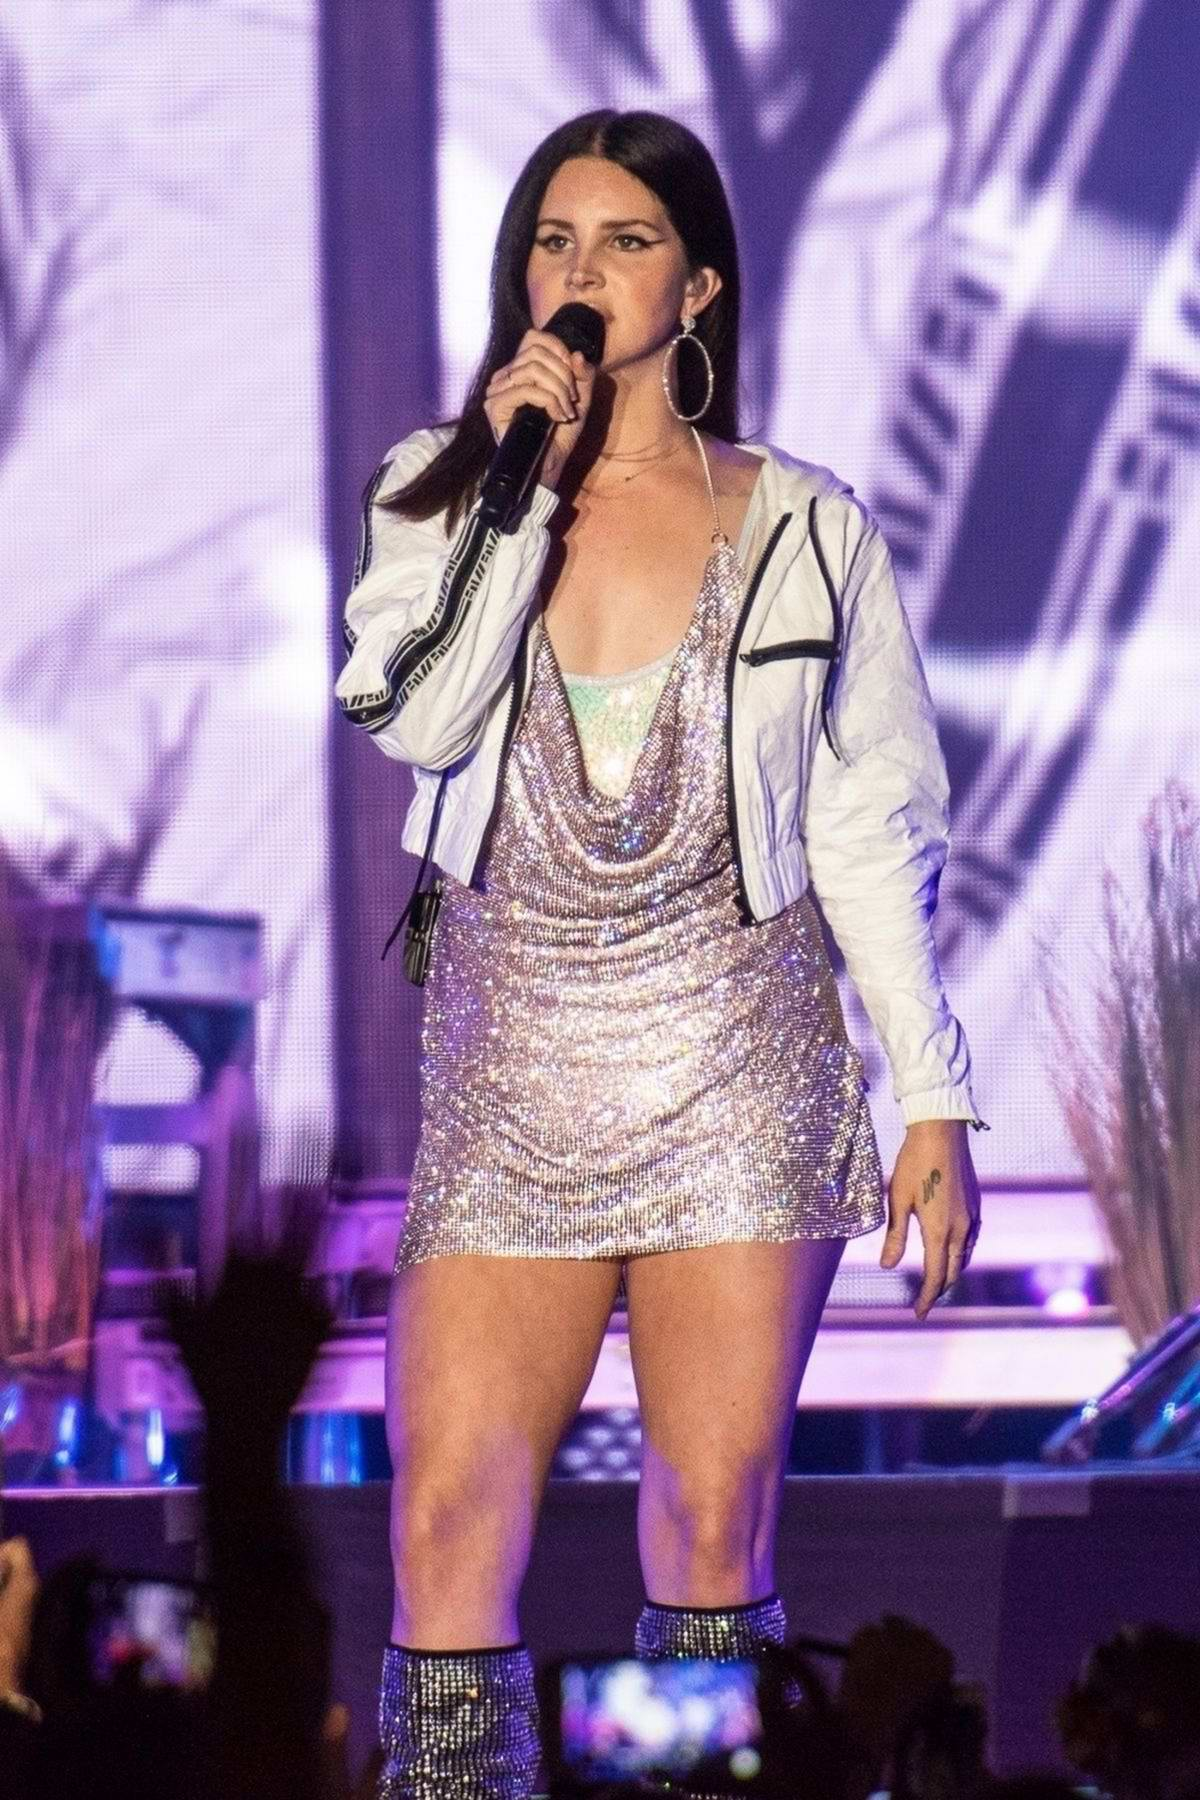 Lana Del Rey performs at Buku Arts + Music Fesival in New Orleans